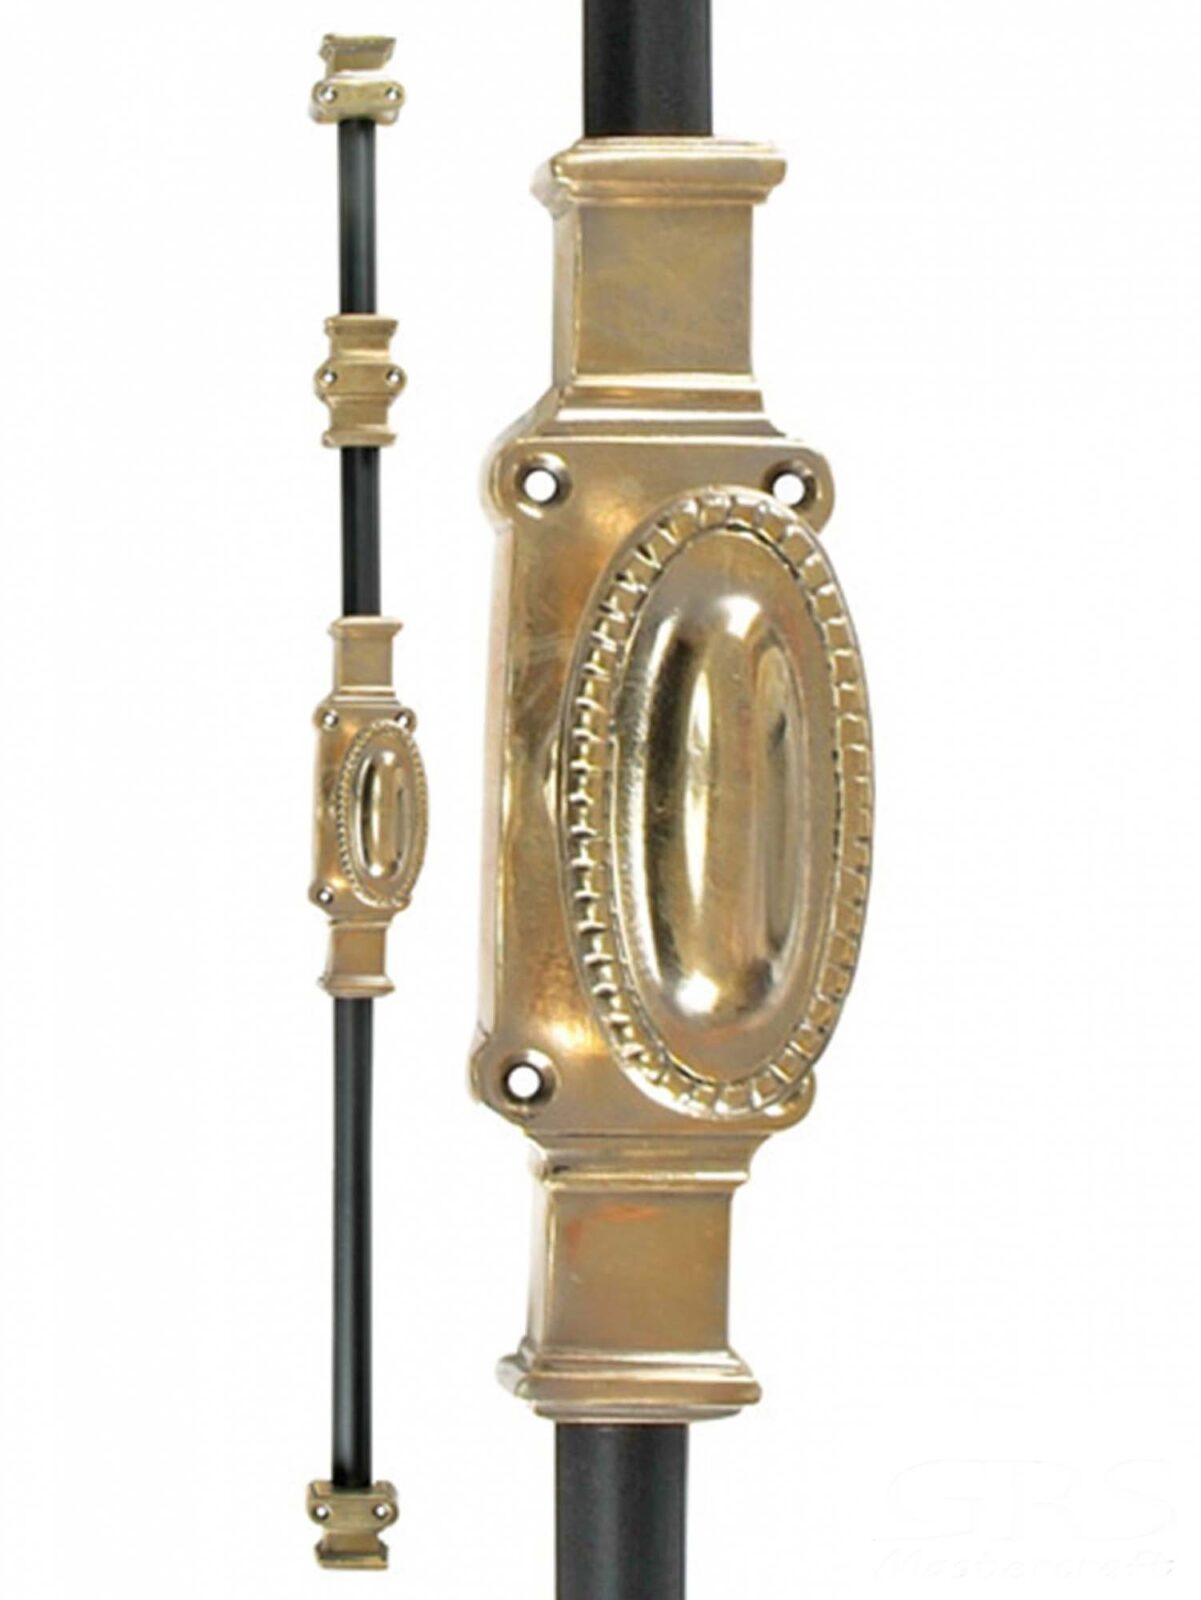 CLASSICAL CREMONE BOLTS SOLID BRASS.